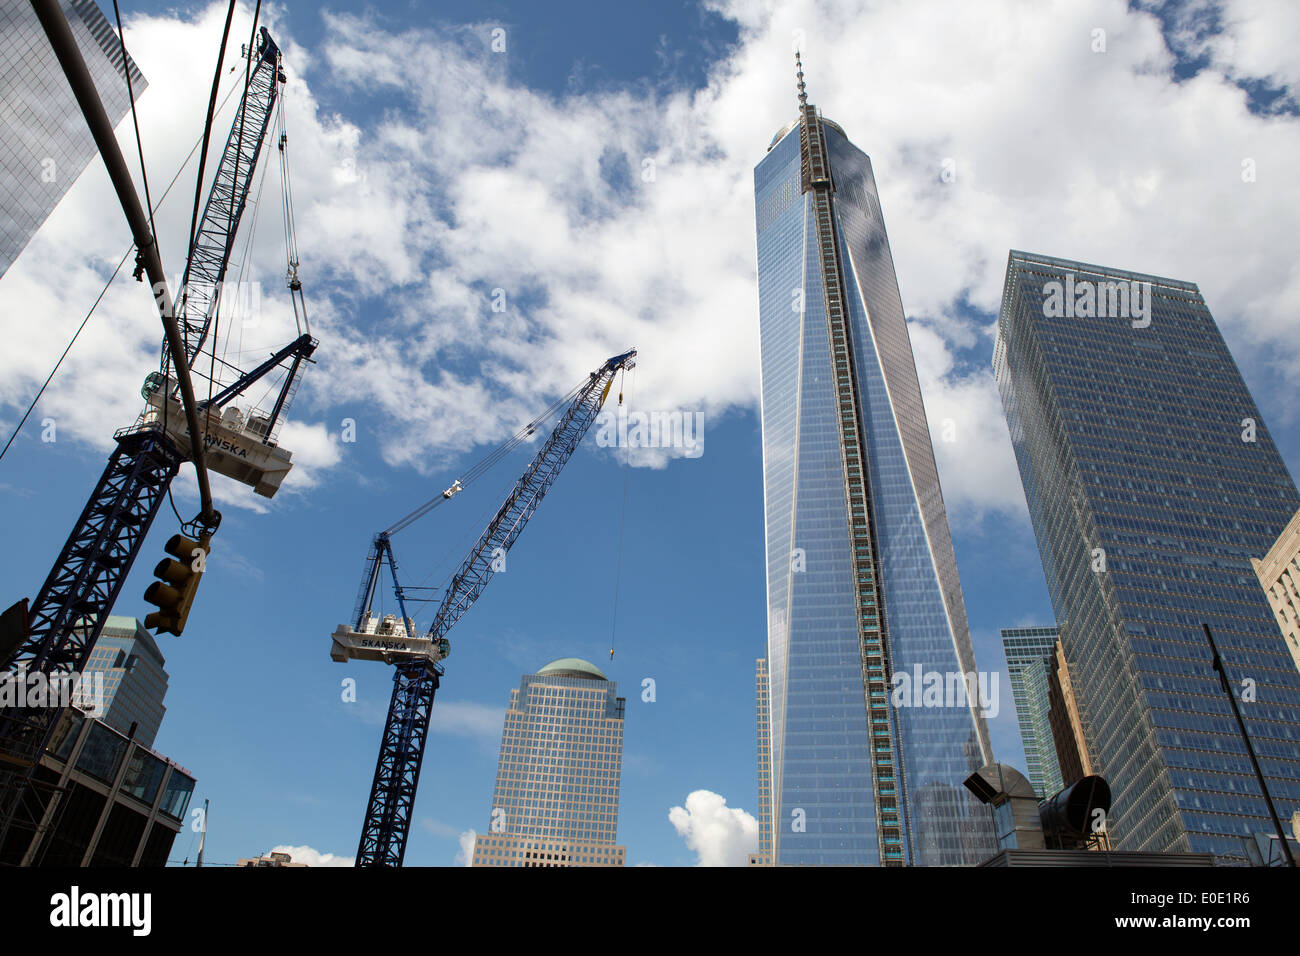 Reconstructed World Trade center building, New York - Stock Image